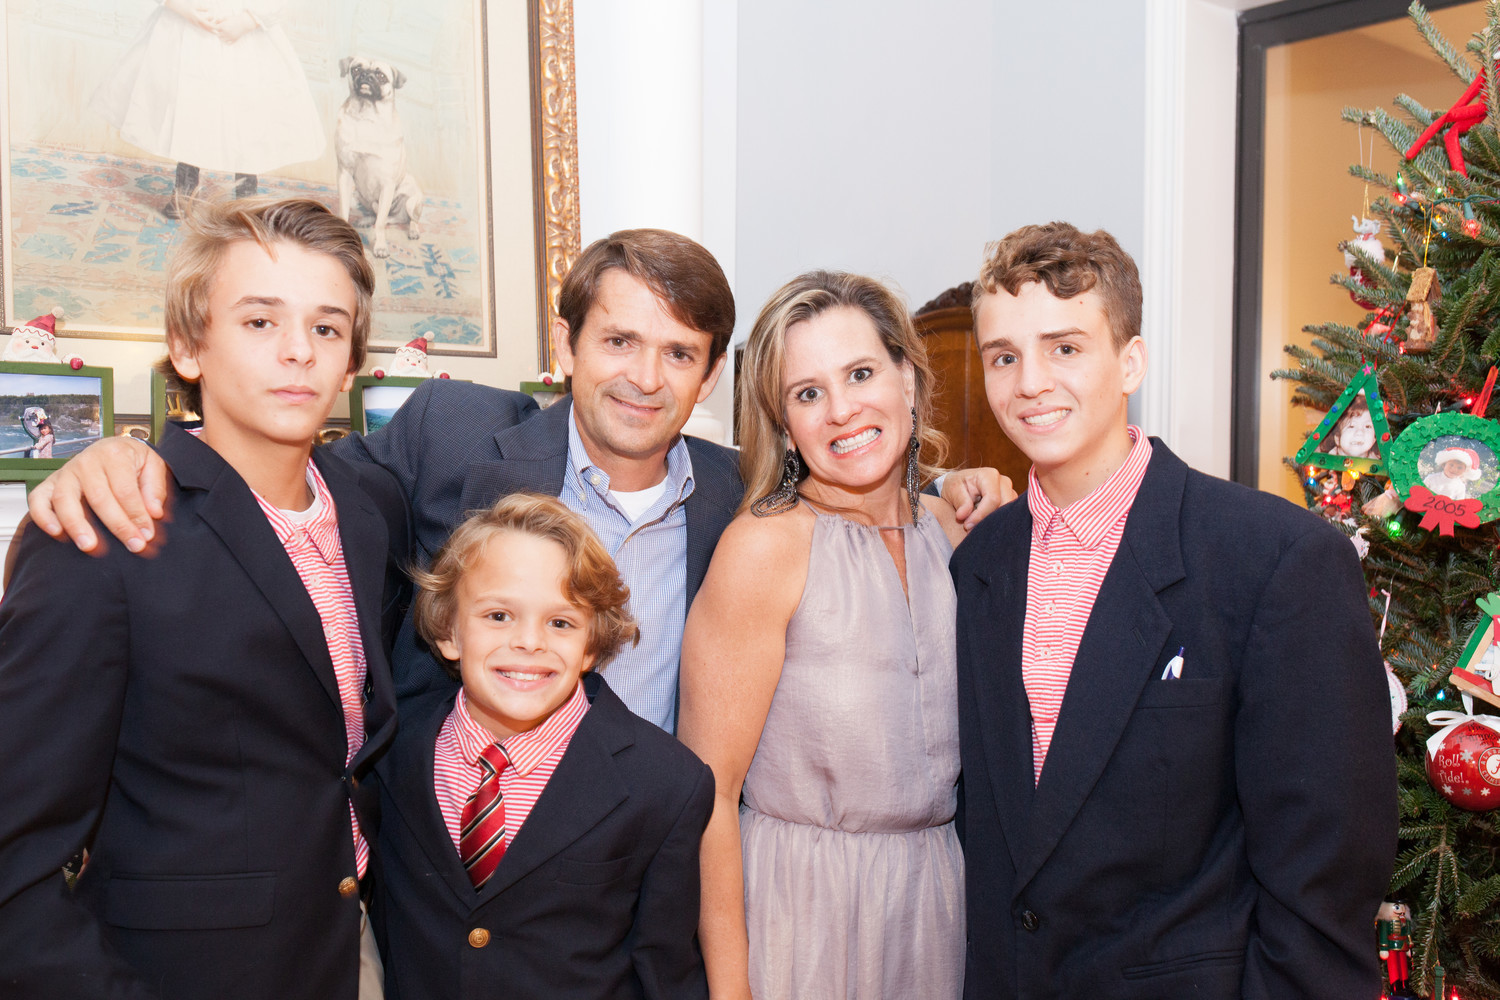 Justin and Mary Beth Clark and family at the fundraiser in 2017